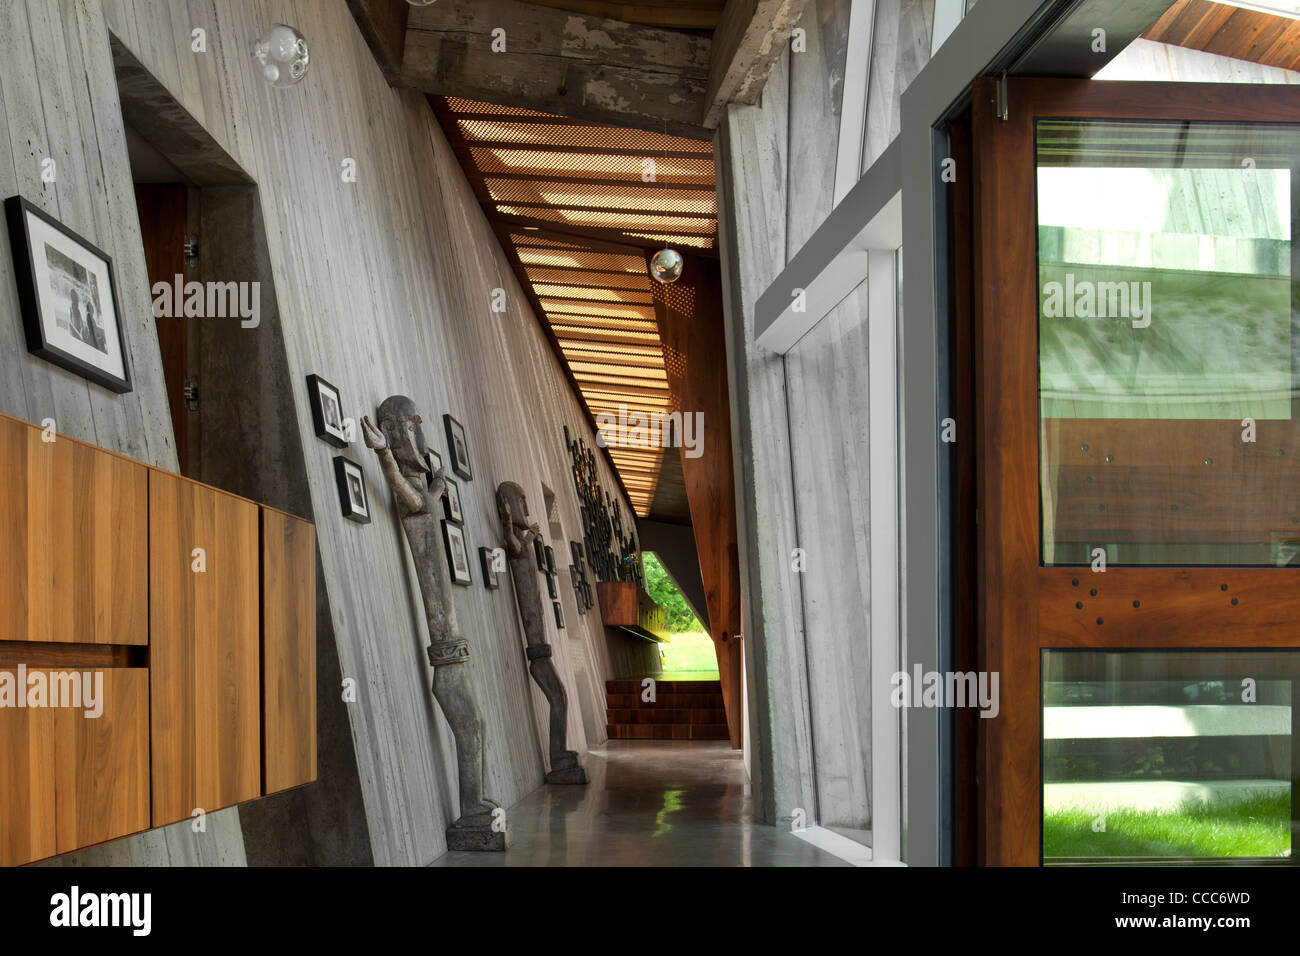 omer arbel office. 23.2 Is A House For Family, Built On Large Rural Acreage. There Omer Arbel Office Z